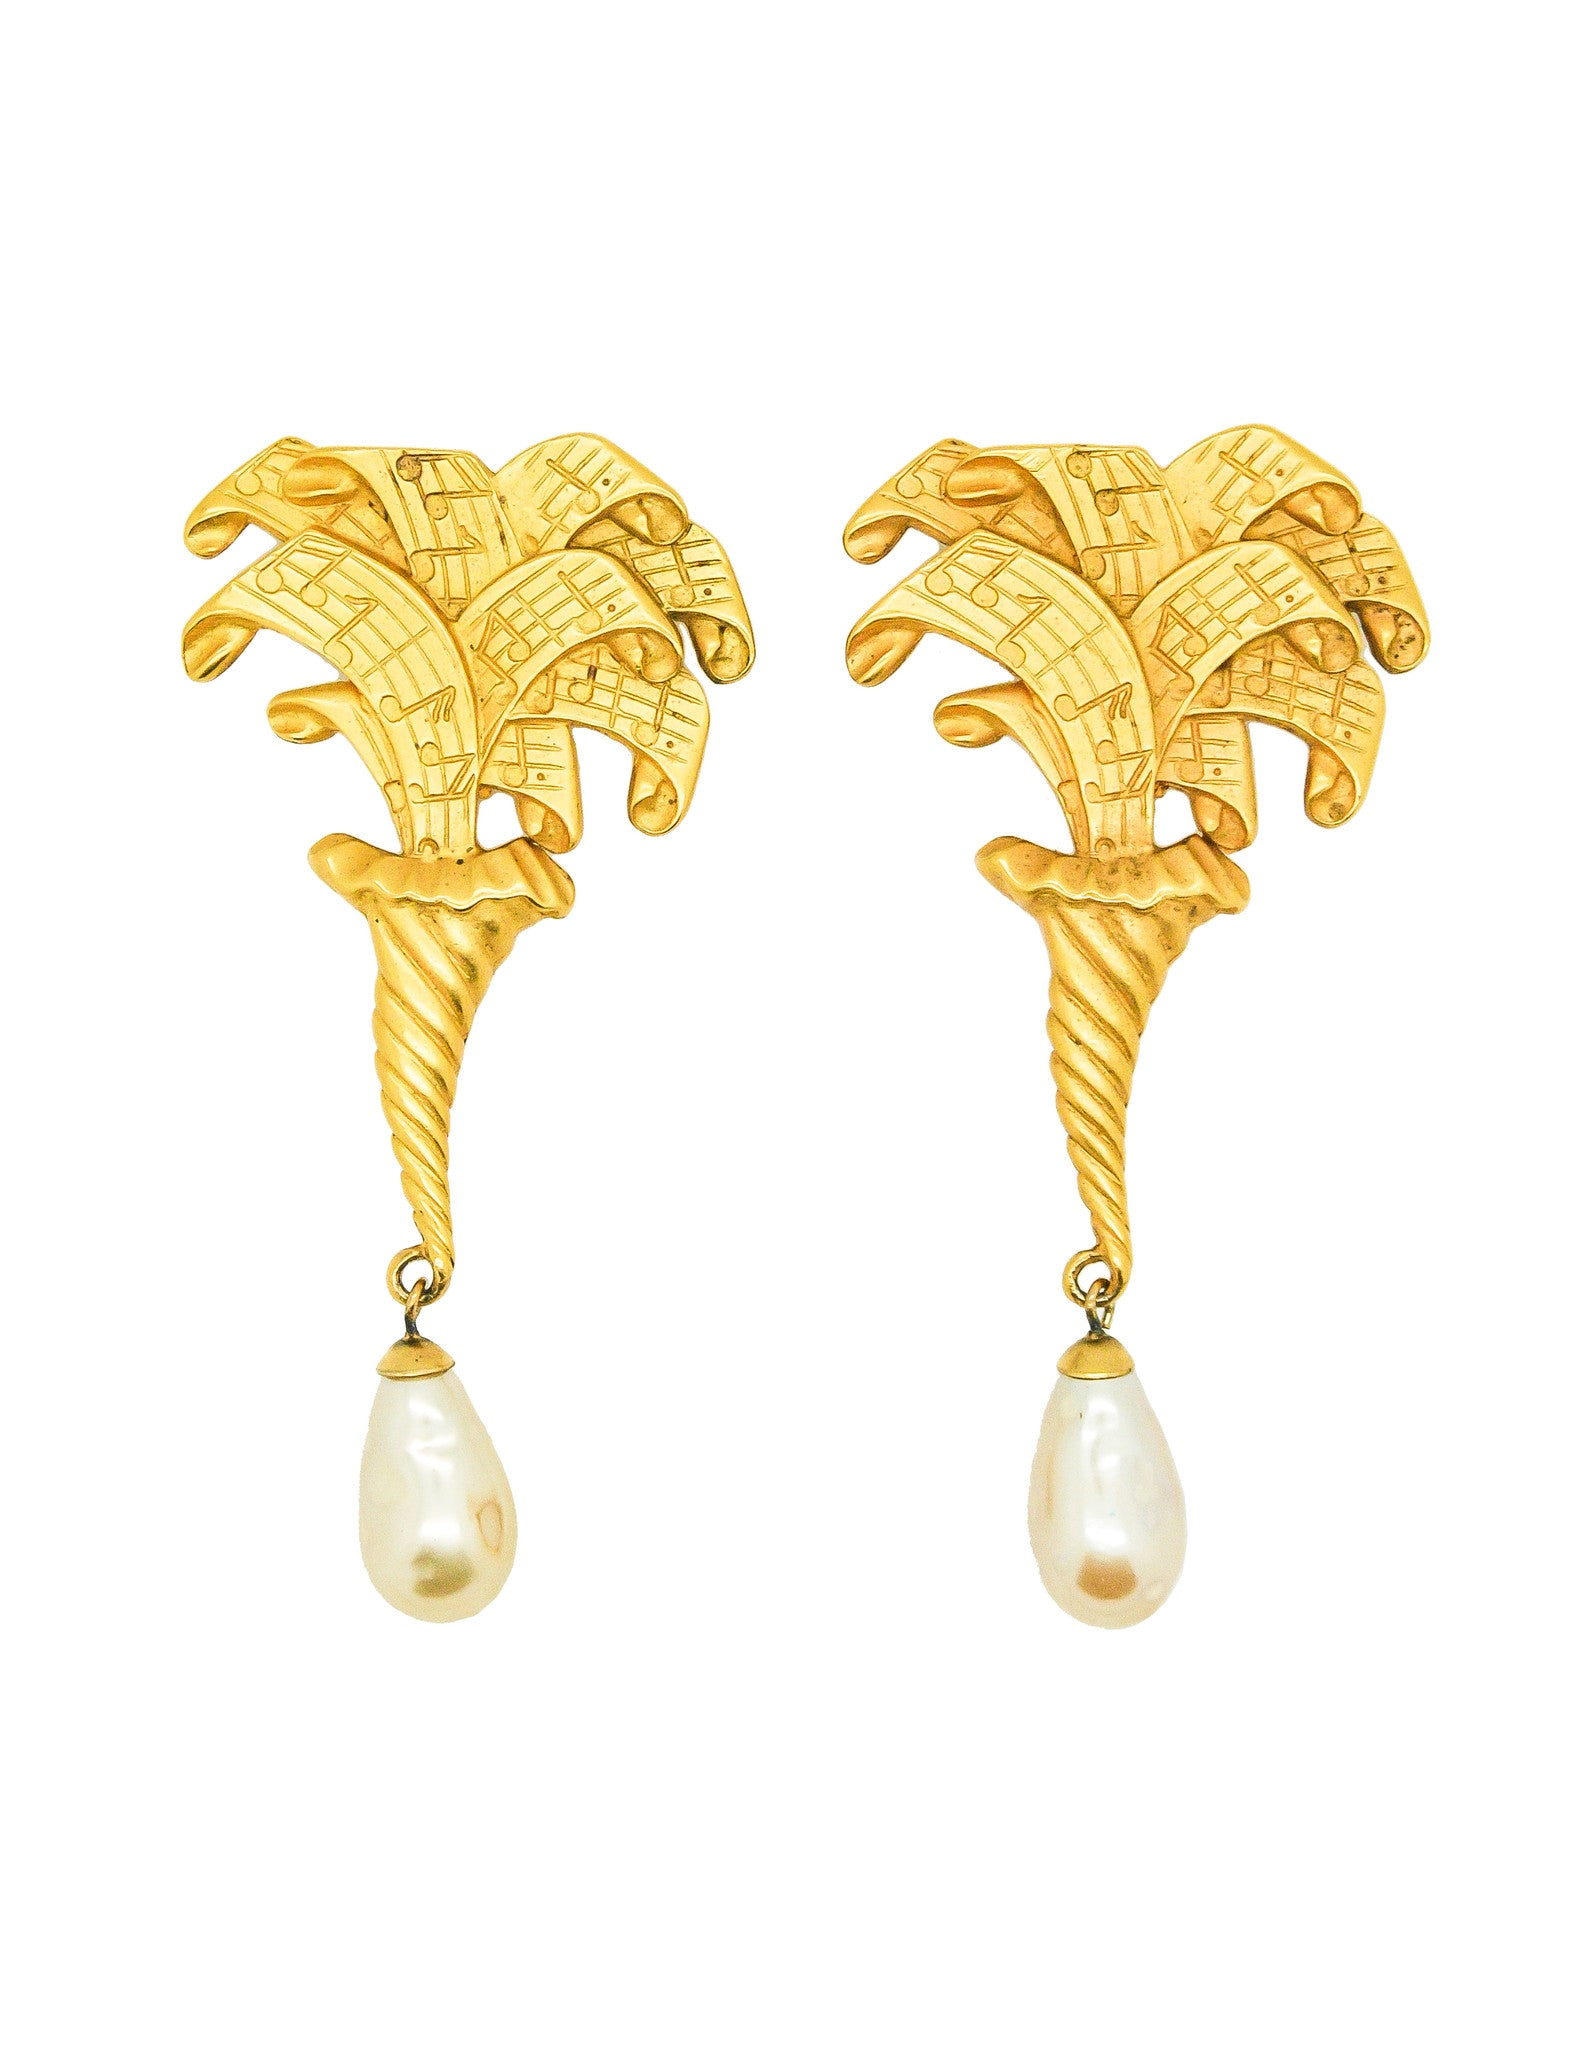 Karl Lagerfeld Vintage Music Horn Earrings - Amarcord Vintage Fashion  - 1